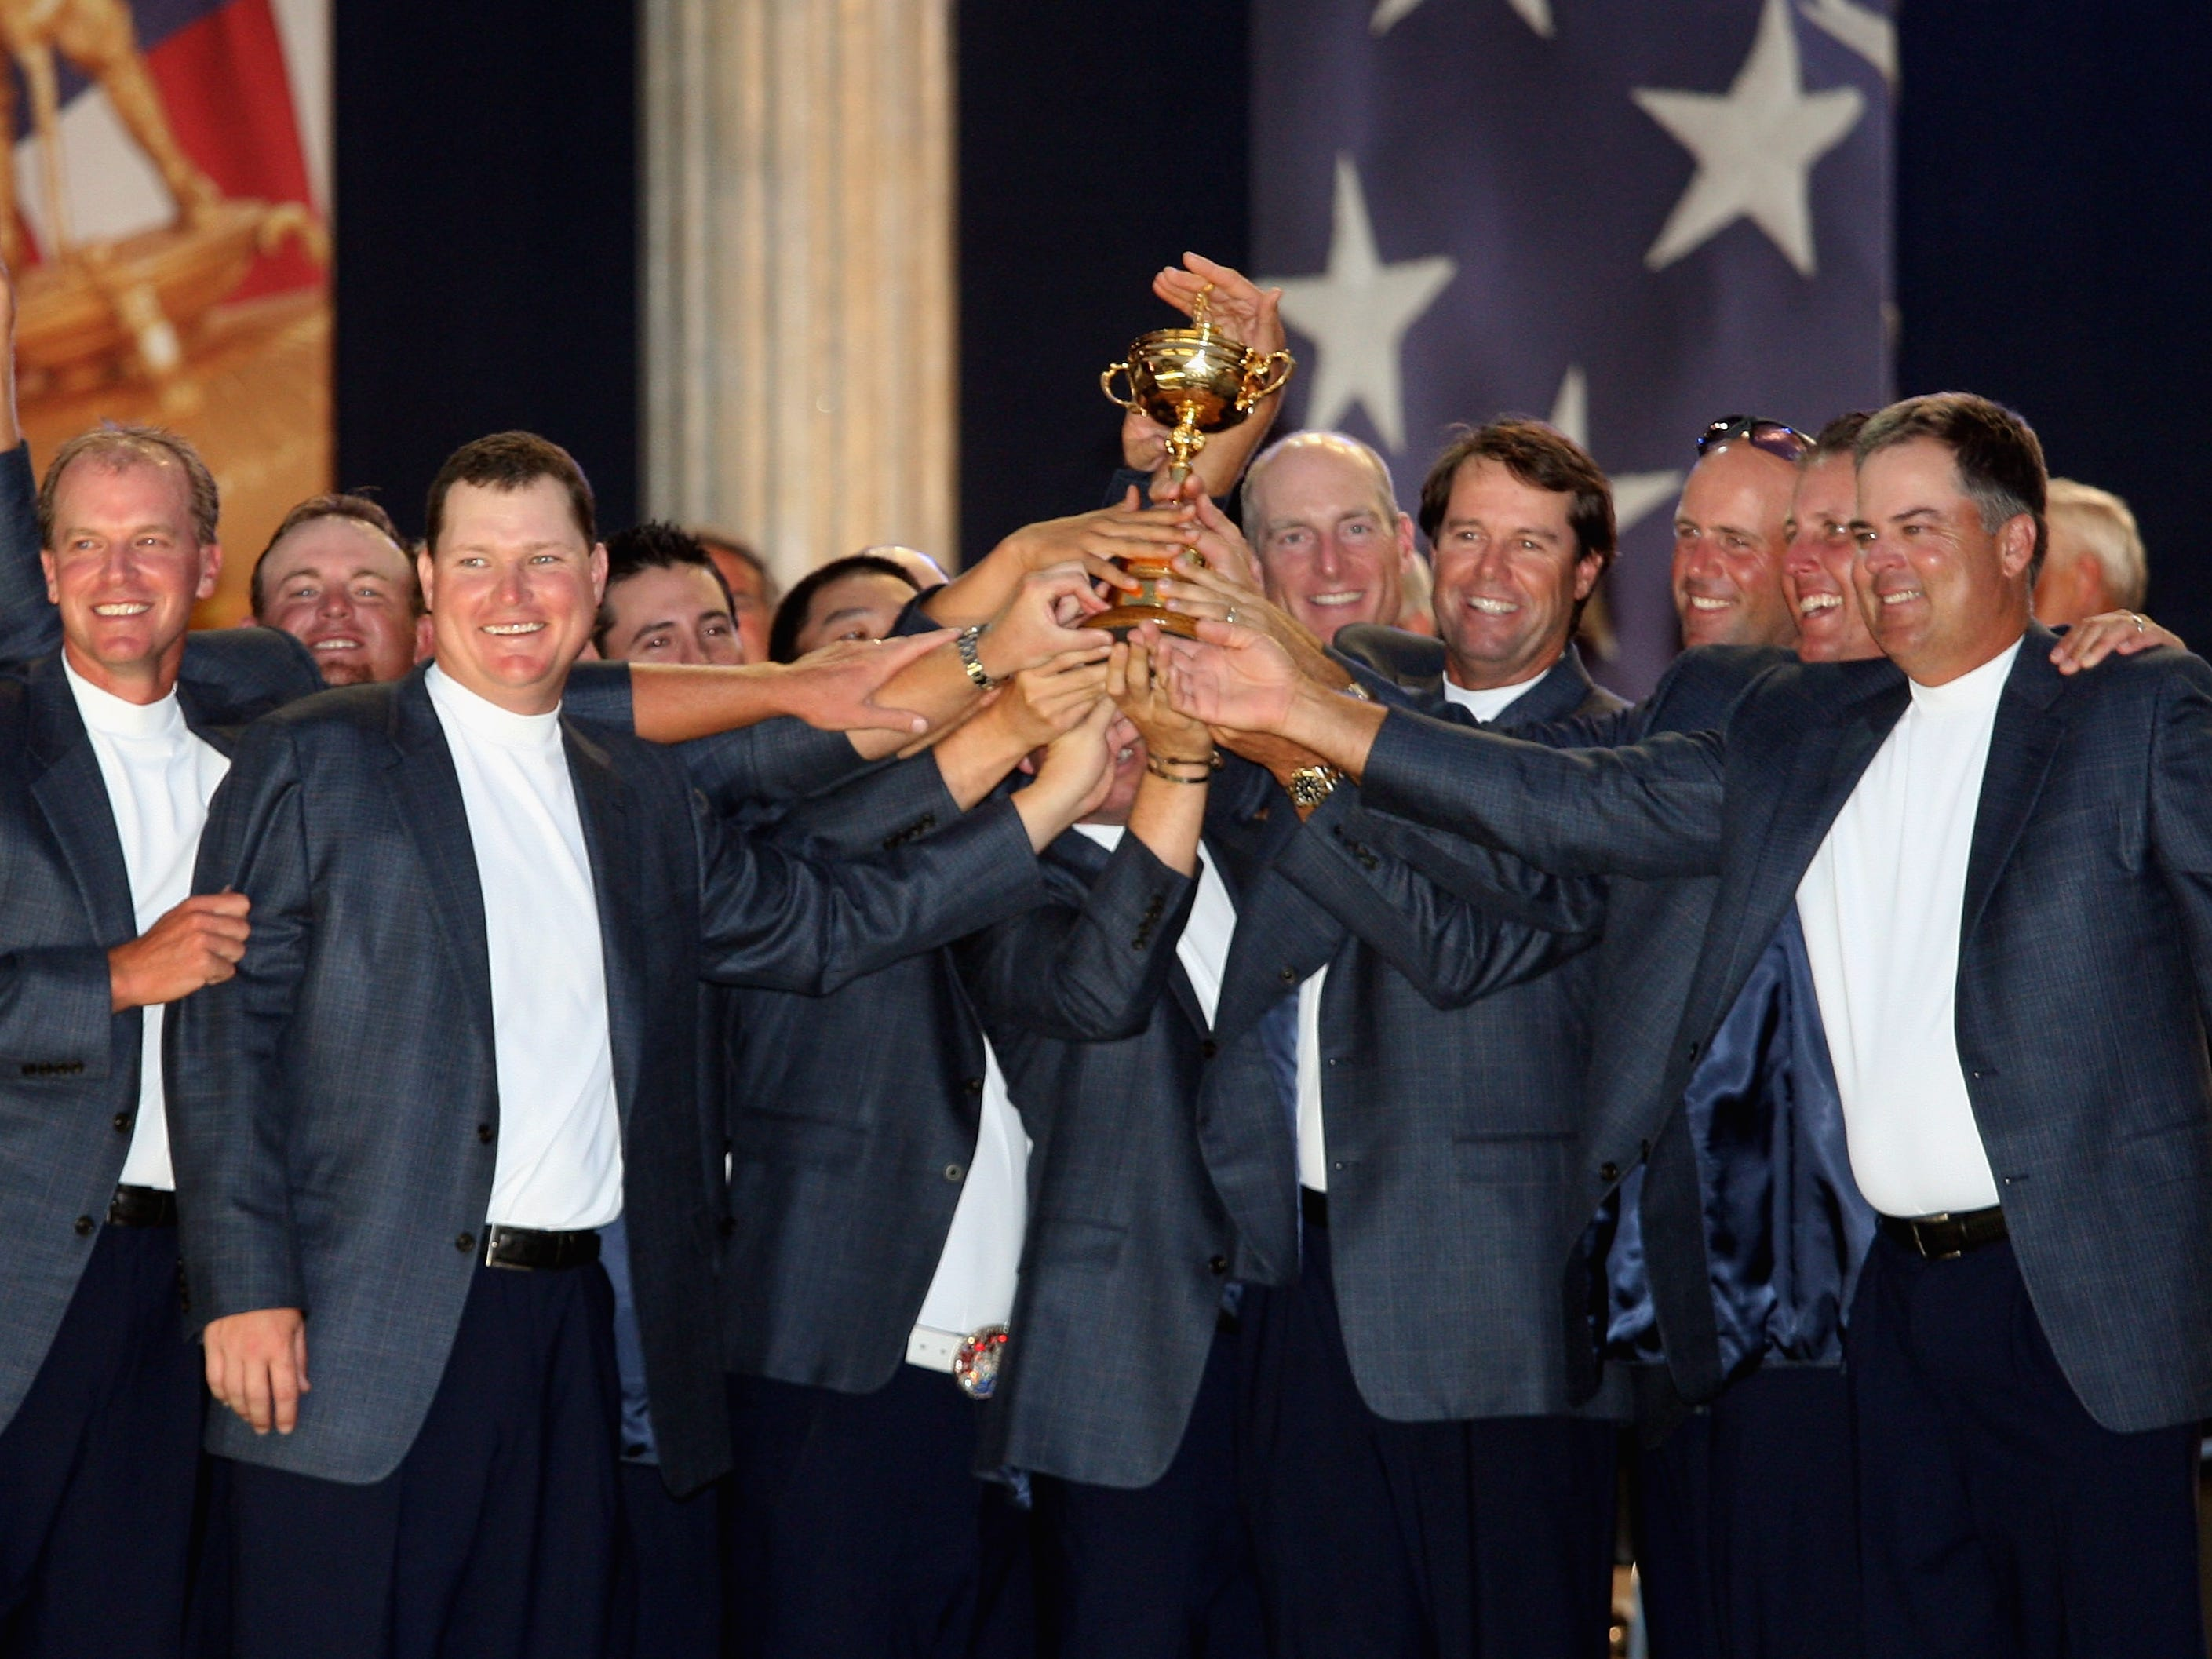 Team USA, 2008: The team poses with the Ryder Cup after winning 16.5 - 11.5.